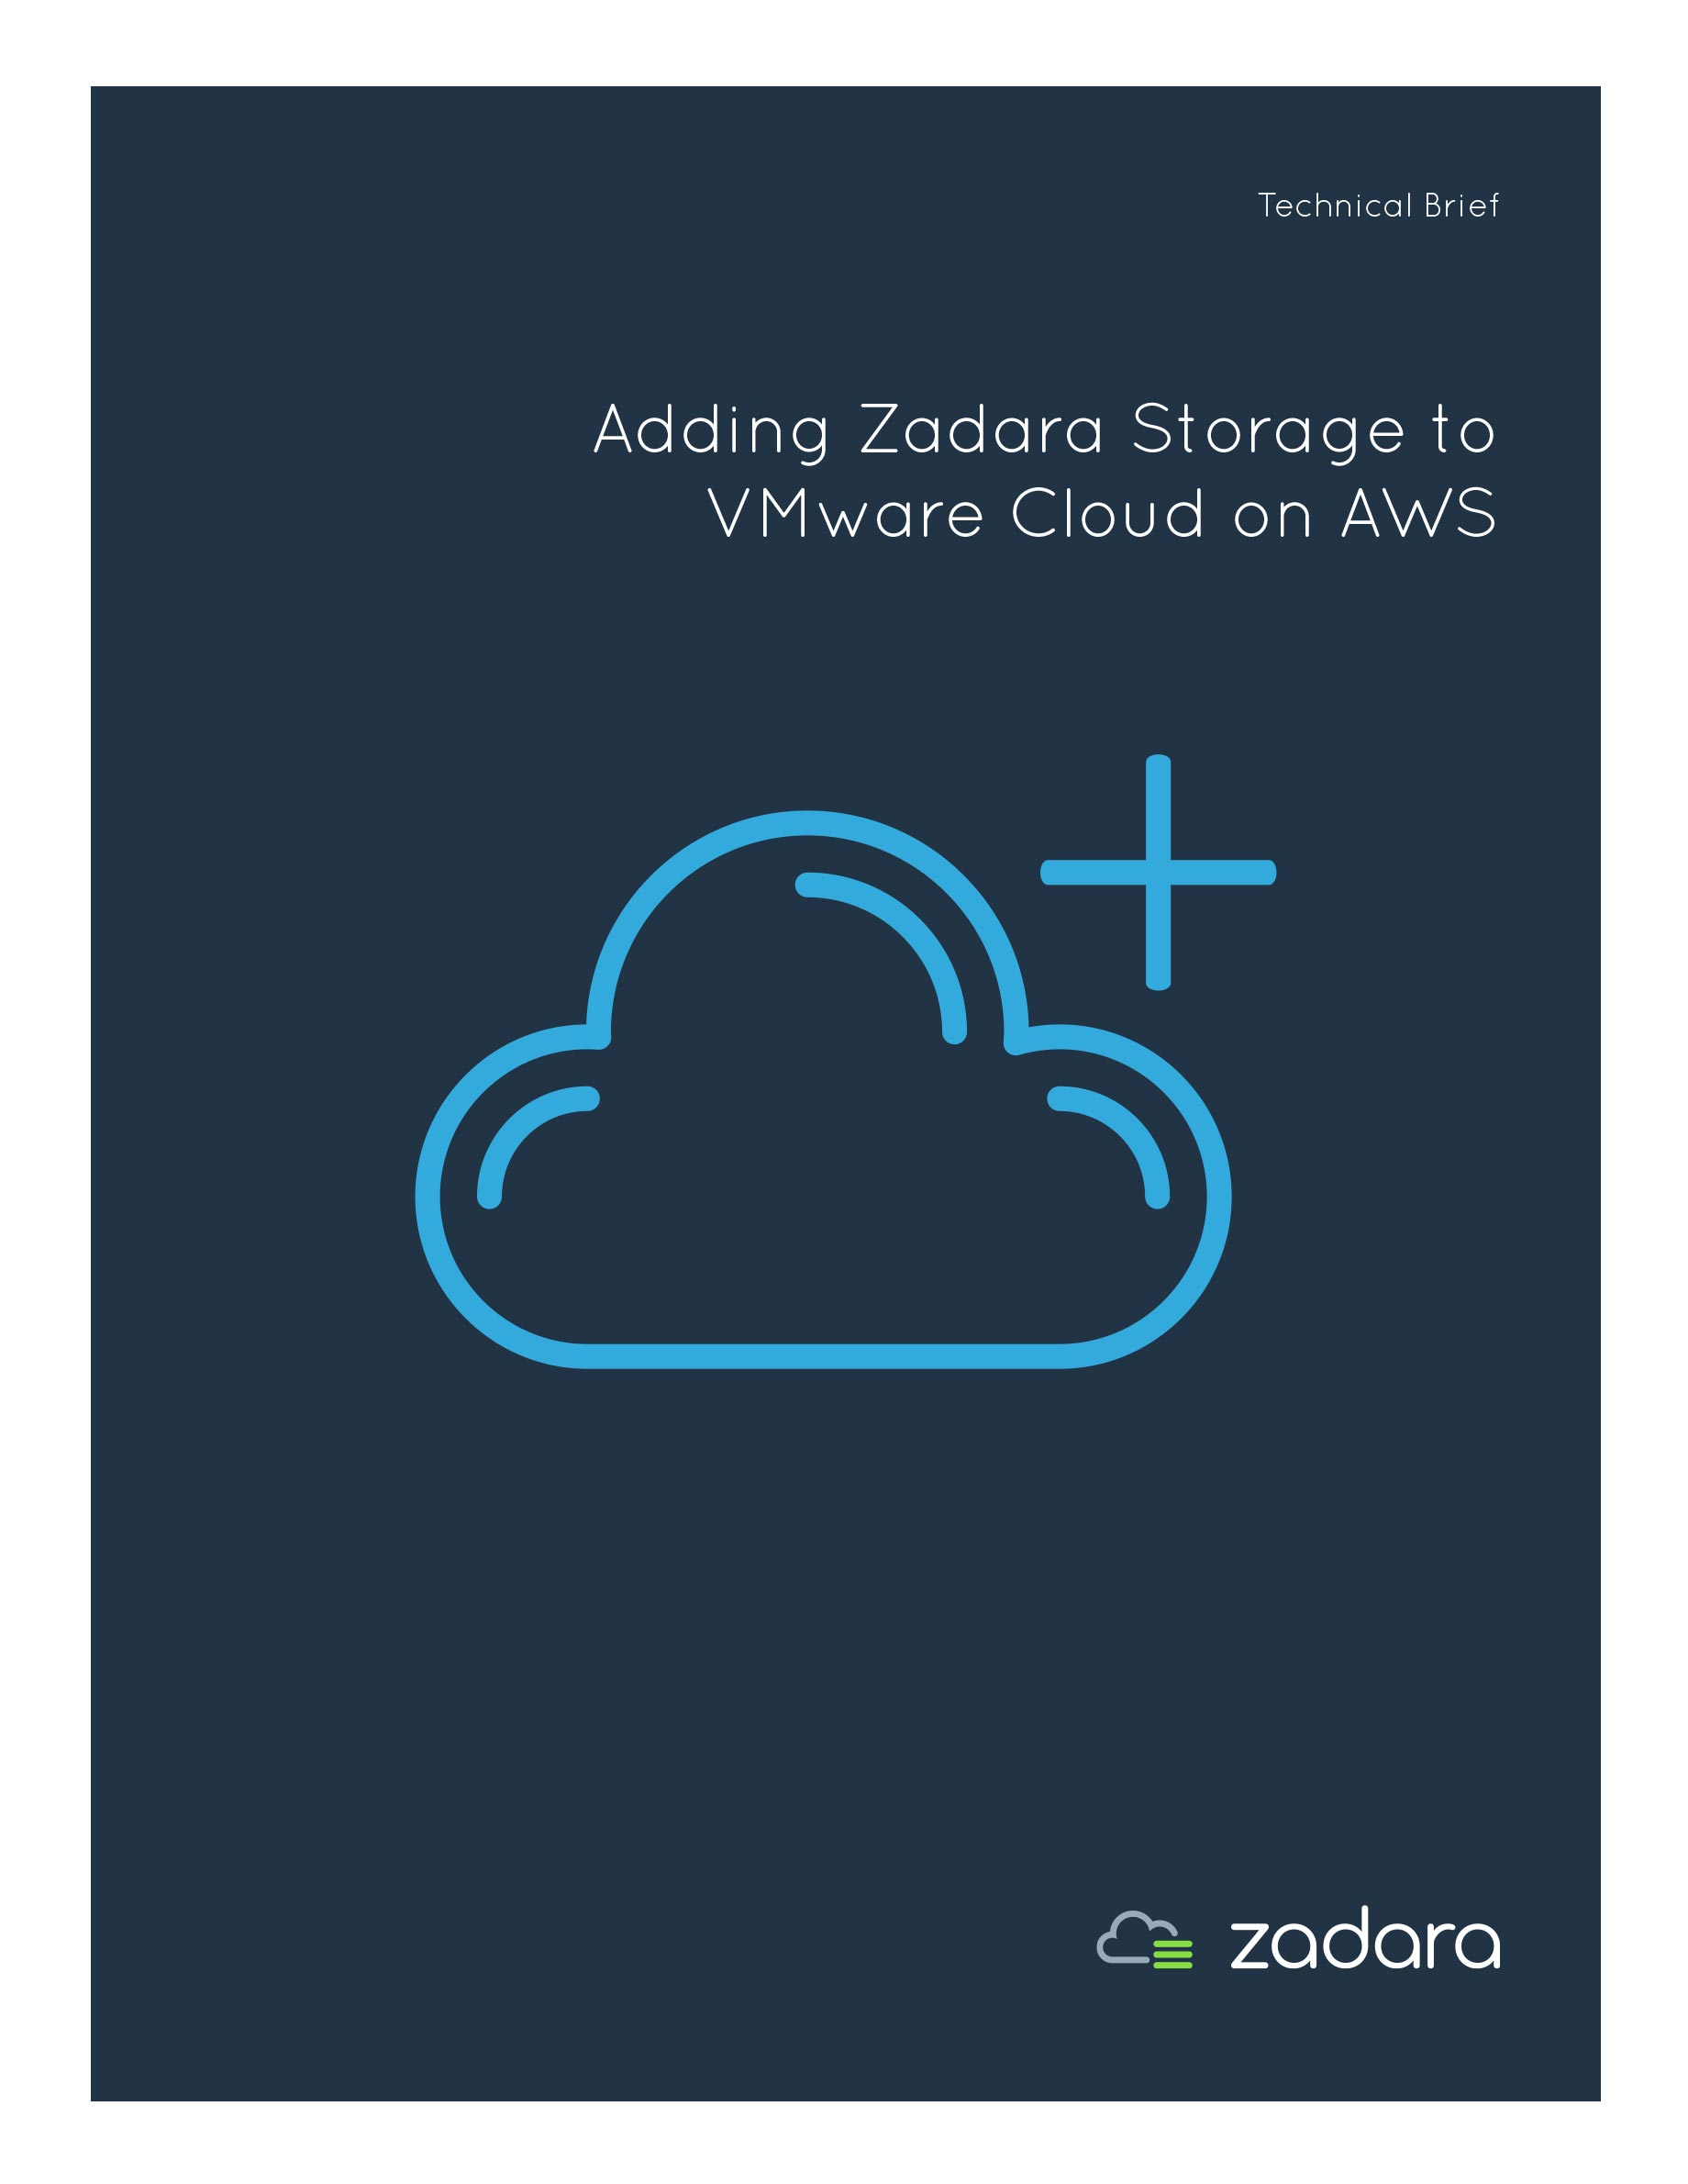 Technical Brief: Adding Zadara Storage to VMware Cloud on AWS